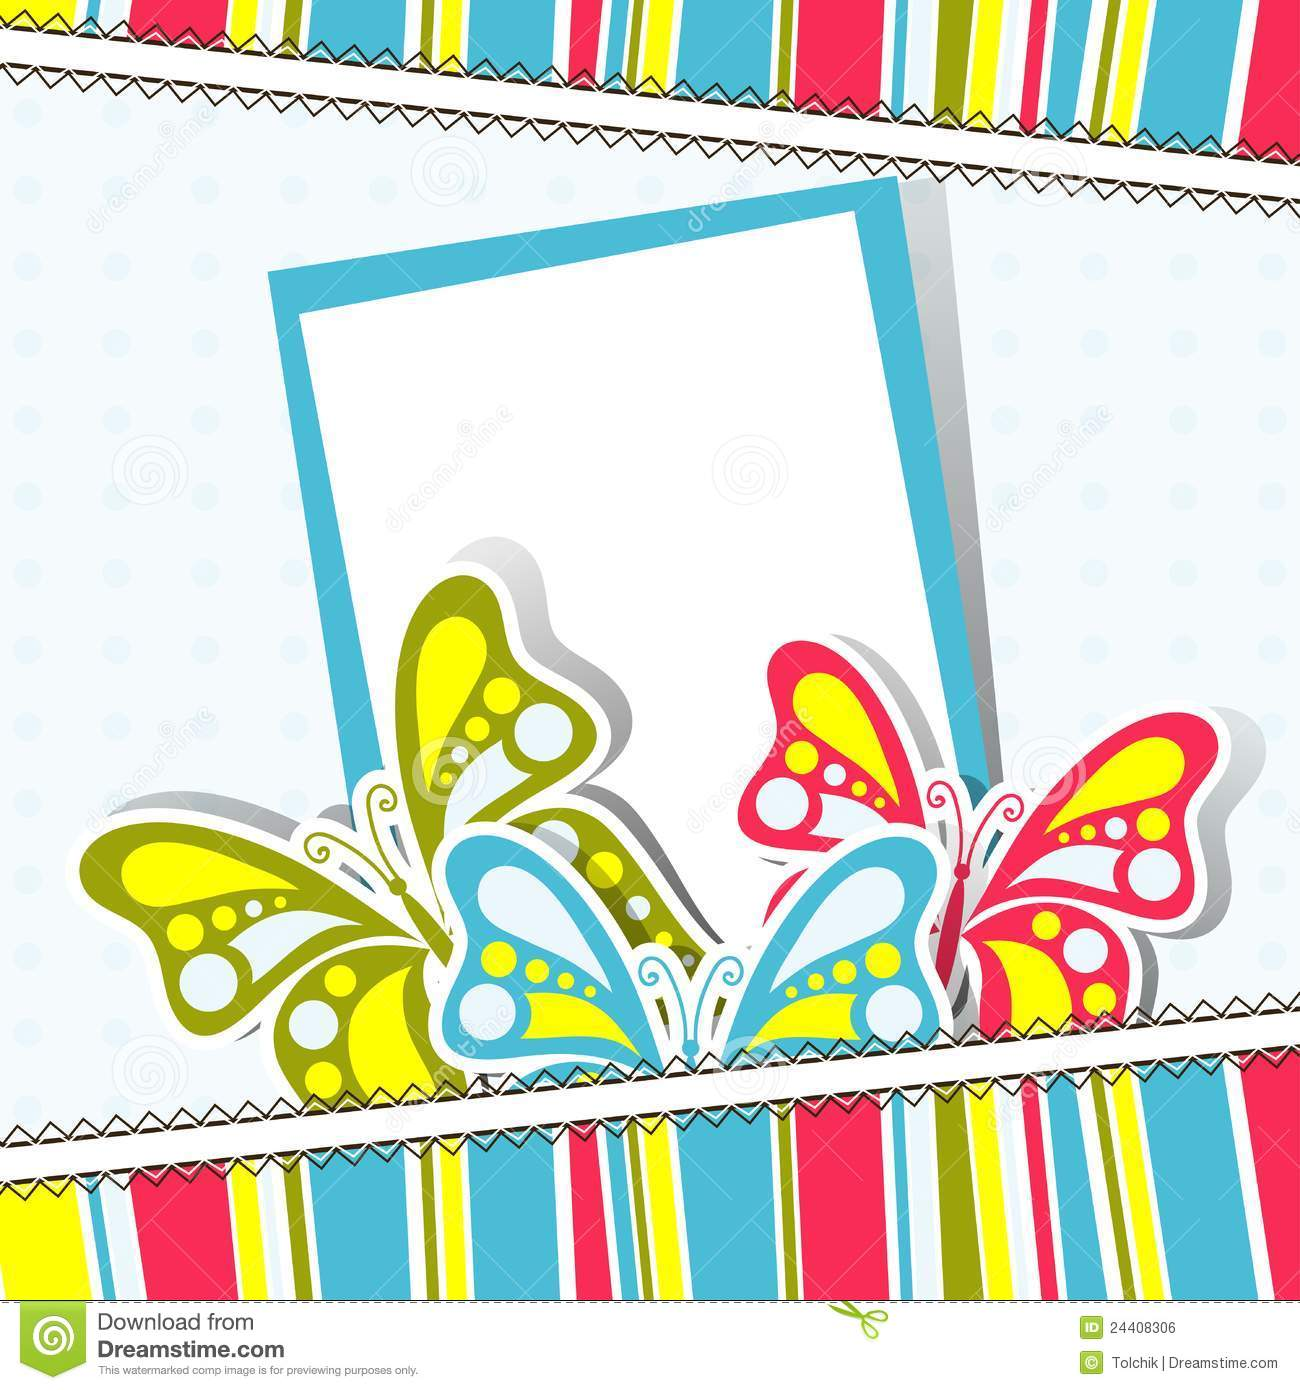 Greeting Card Template » Small Greeting Card Template - Free Card ...